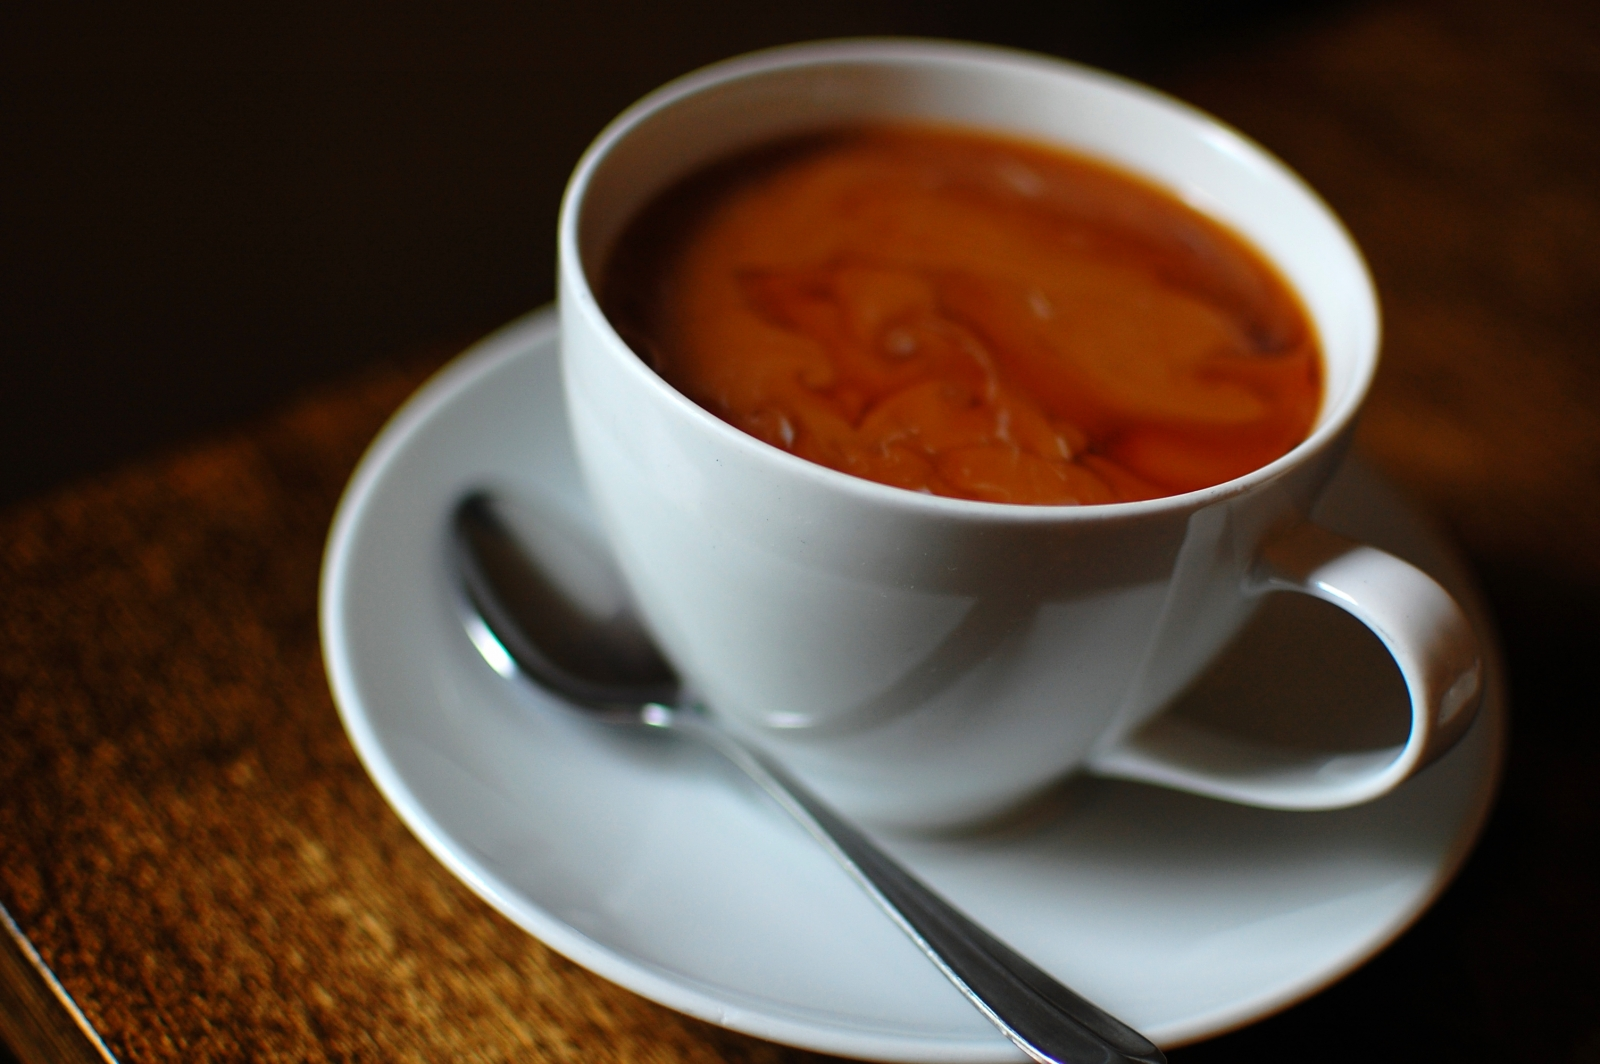 Drinking coffee may help you live longer